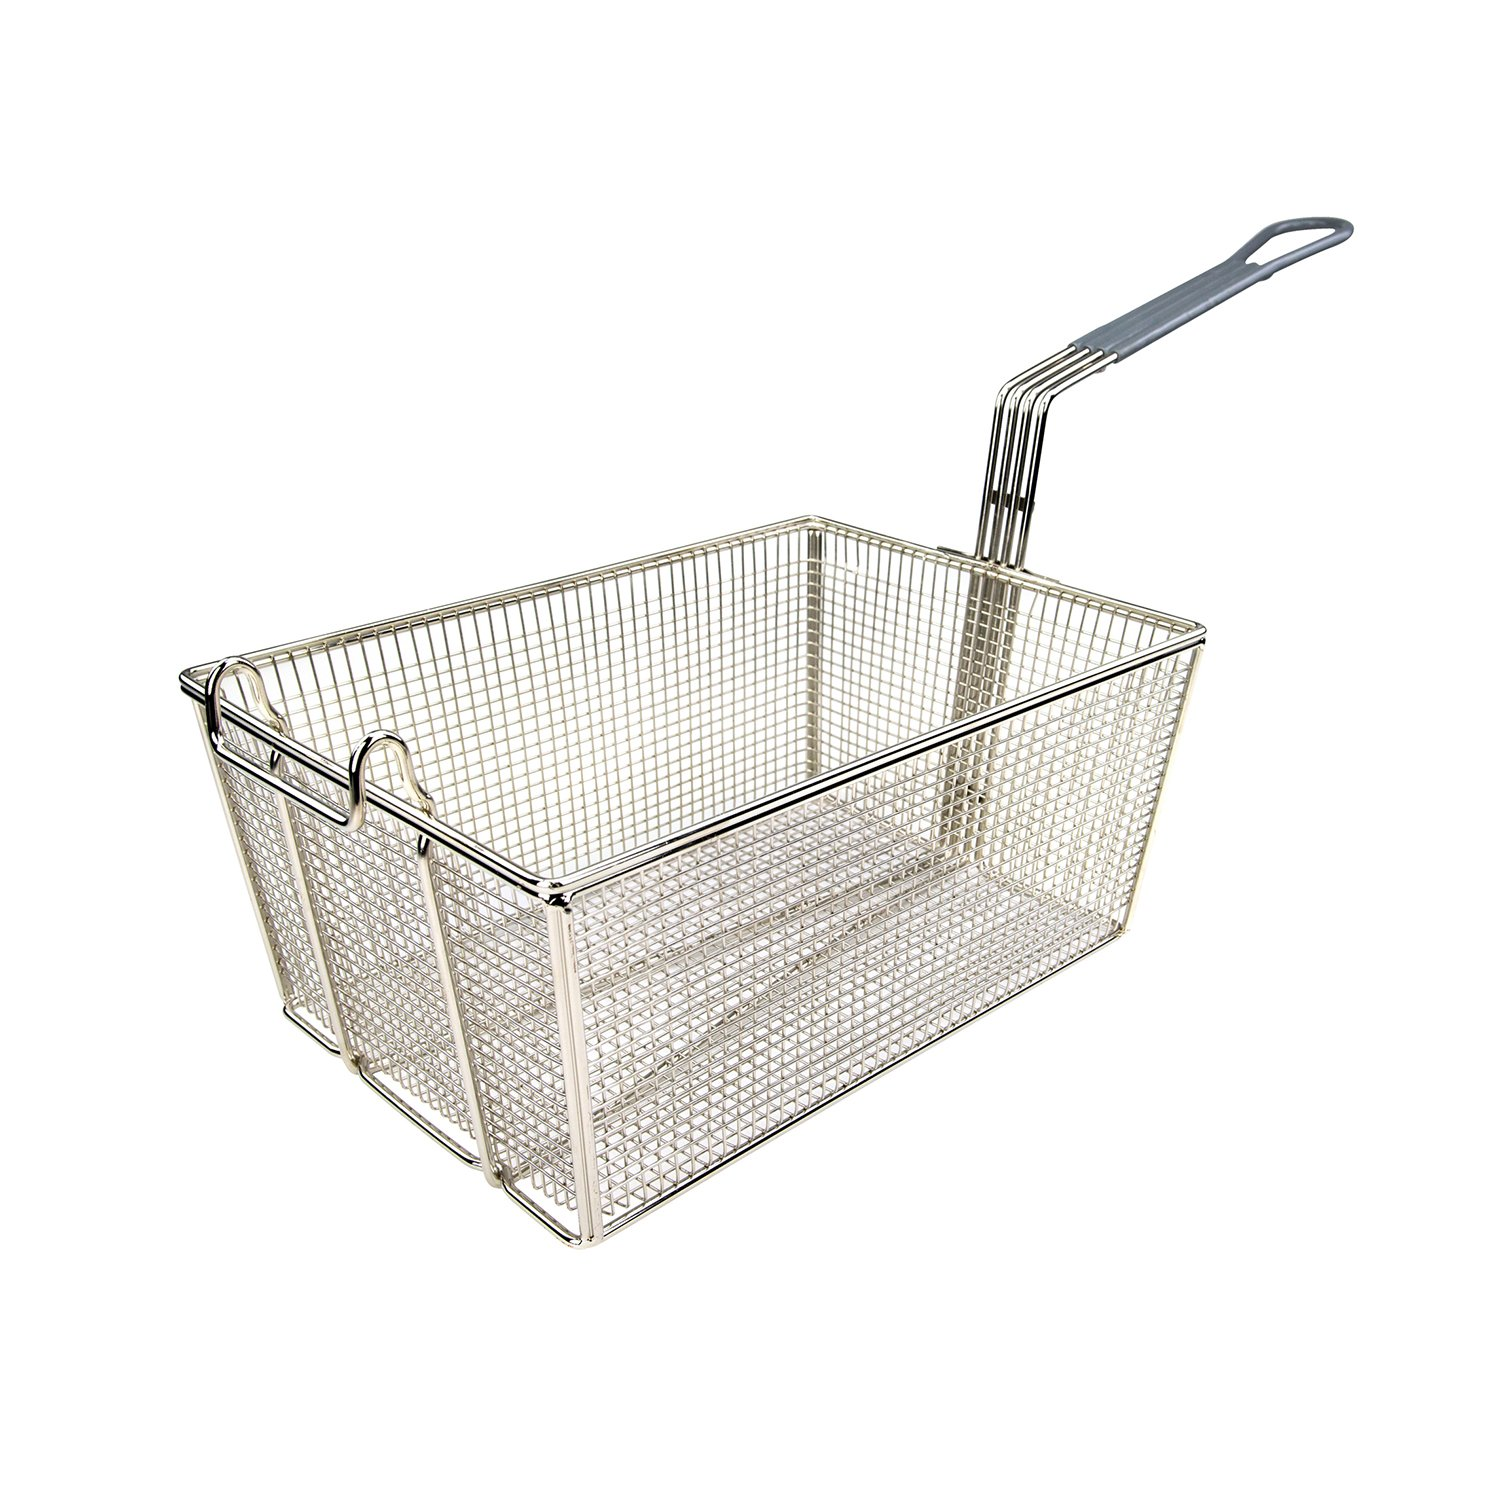 Wincо FB-35 Nickel-Plated Fry Basket 13-3/8'' with Gray Coated Handle by Wincо